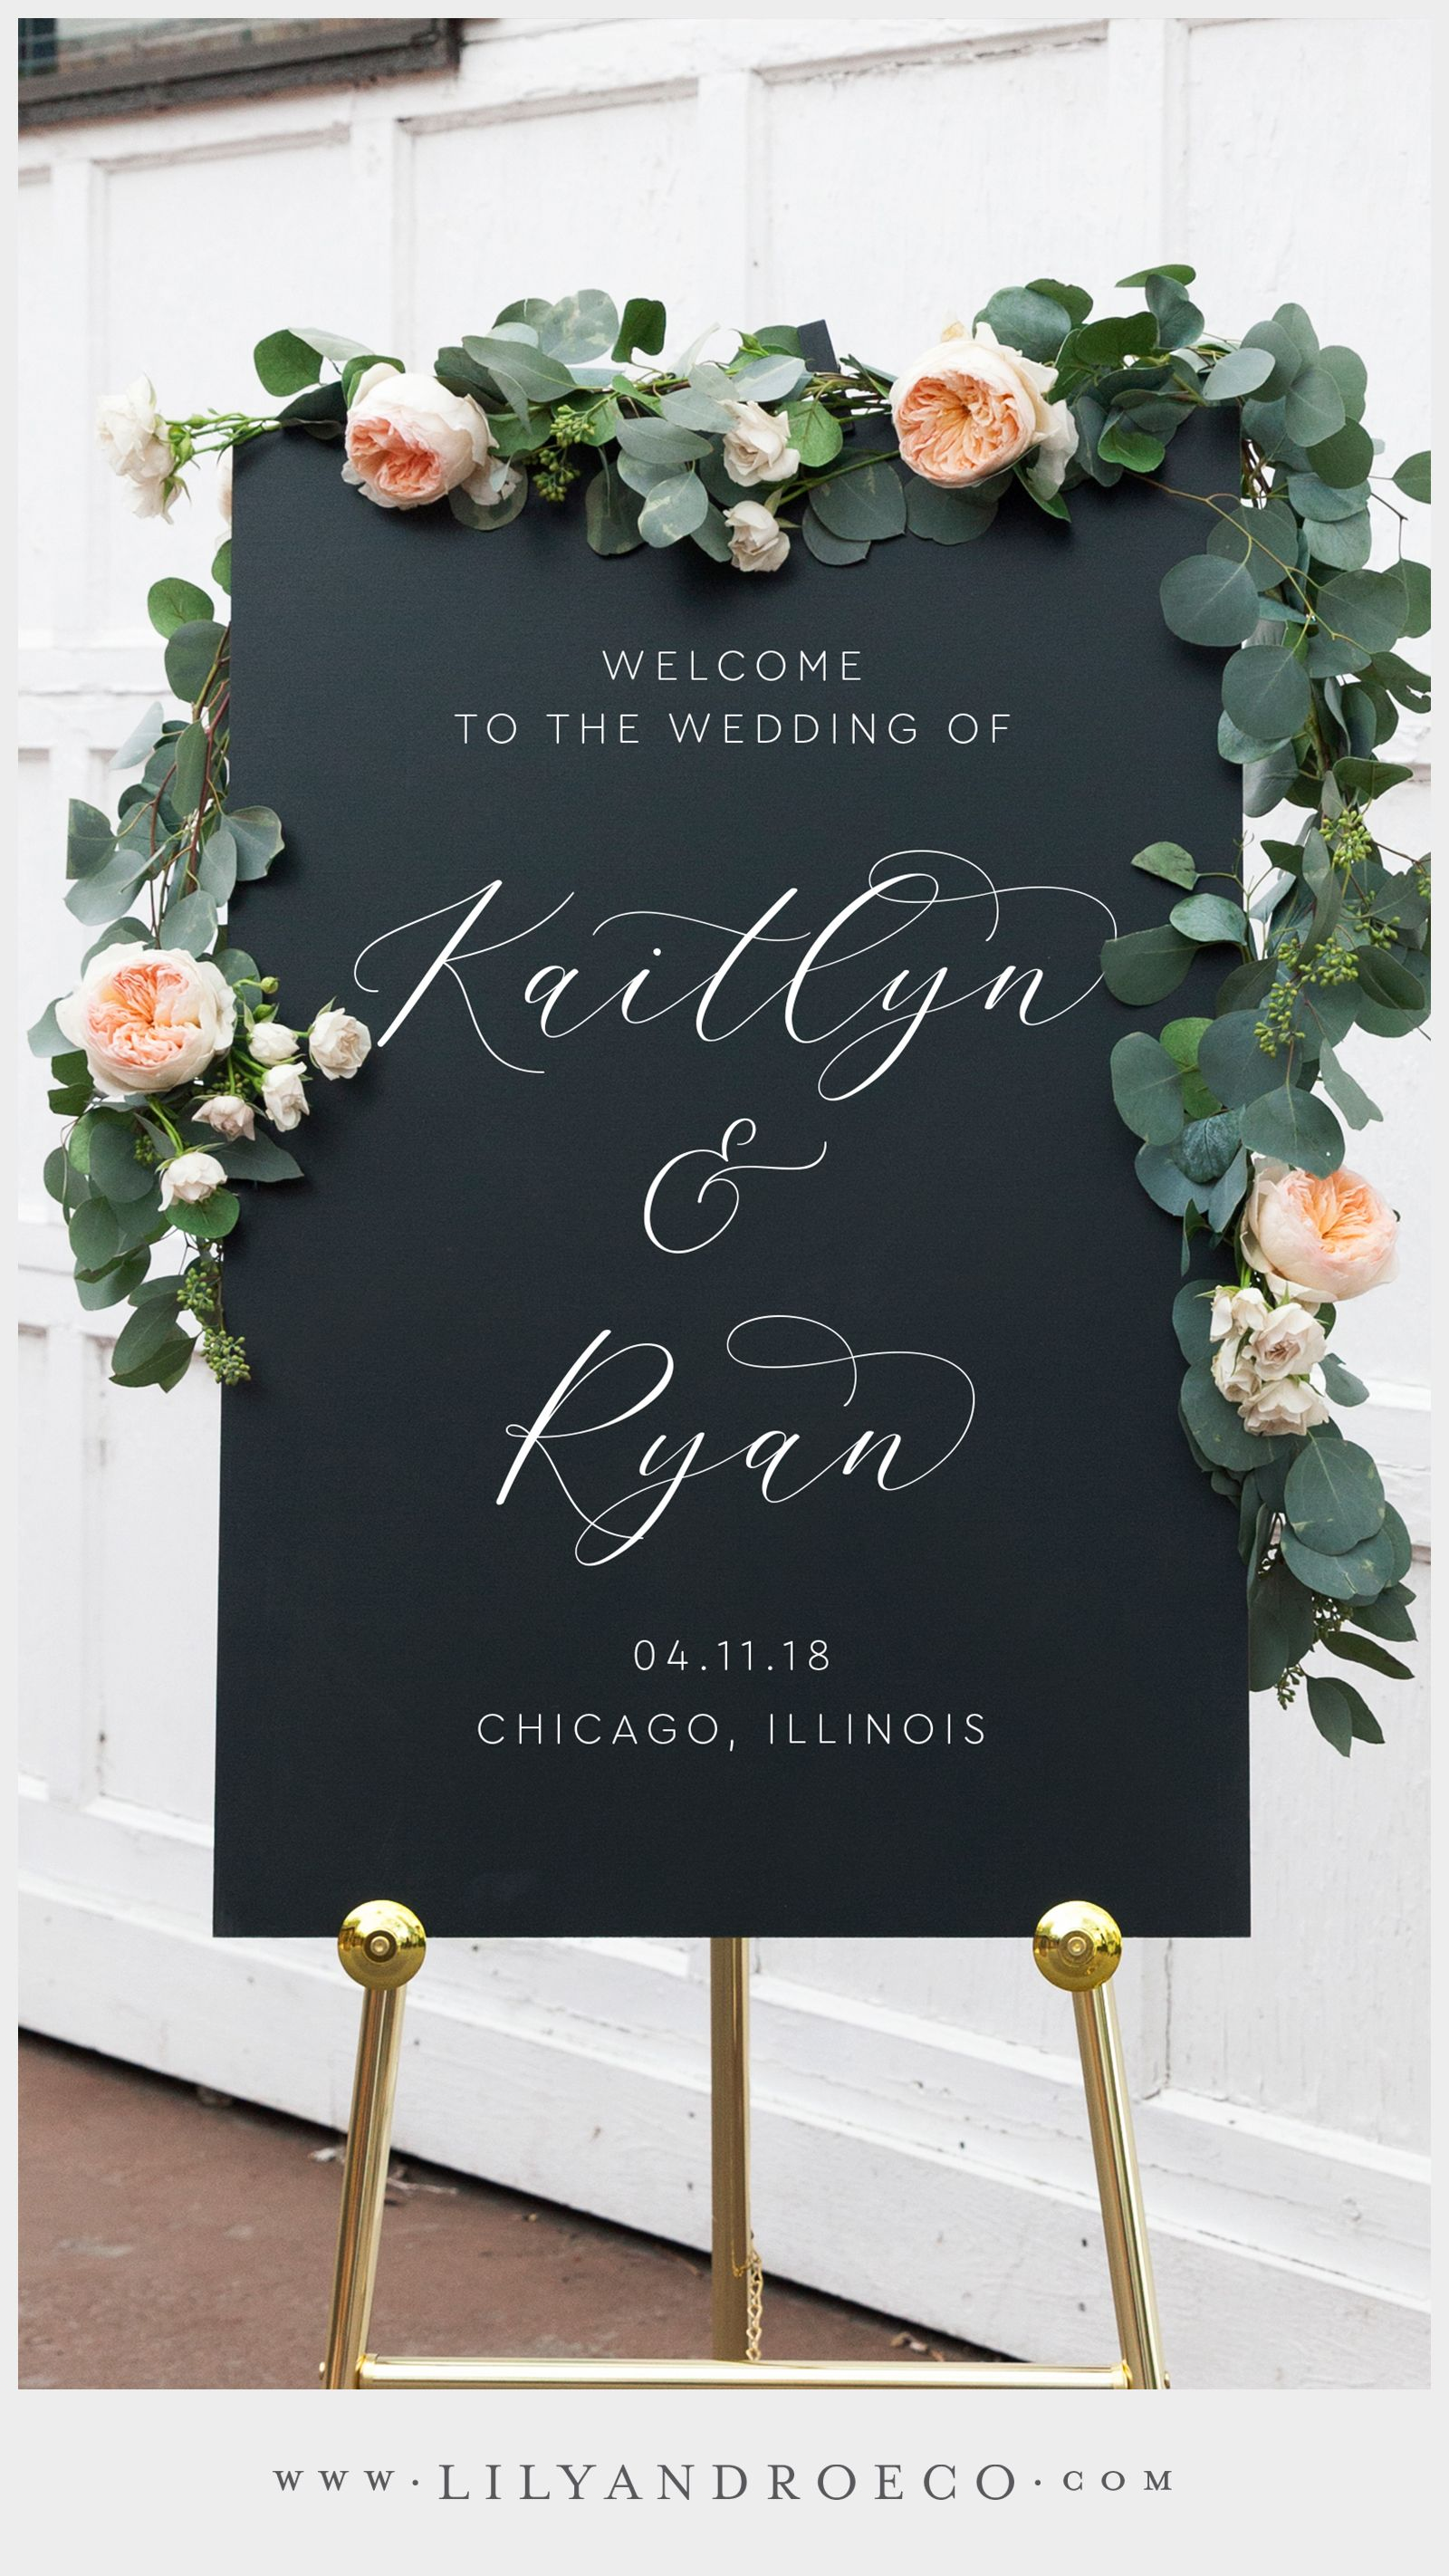 Beautiful Welcome Signs for Wedding Receptions